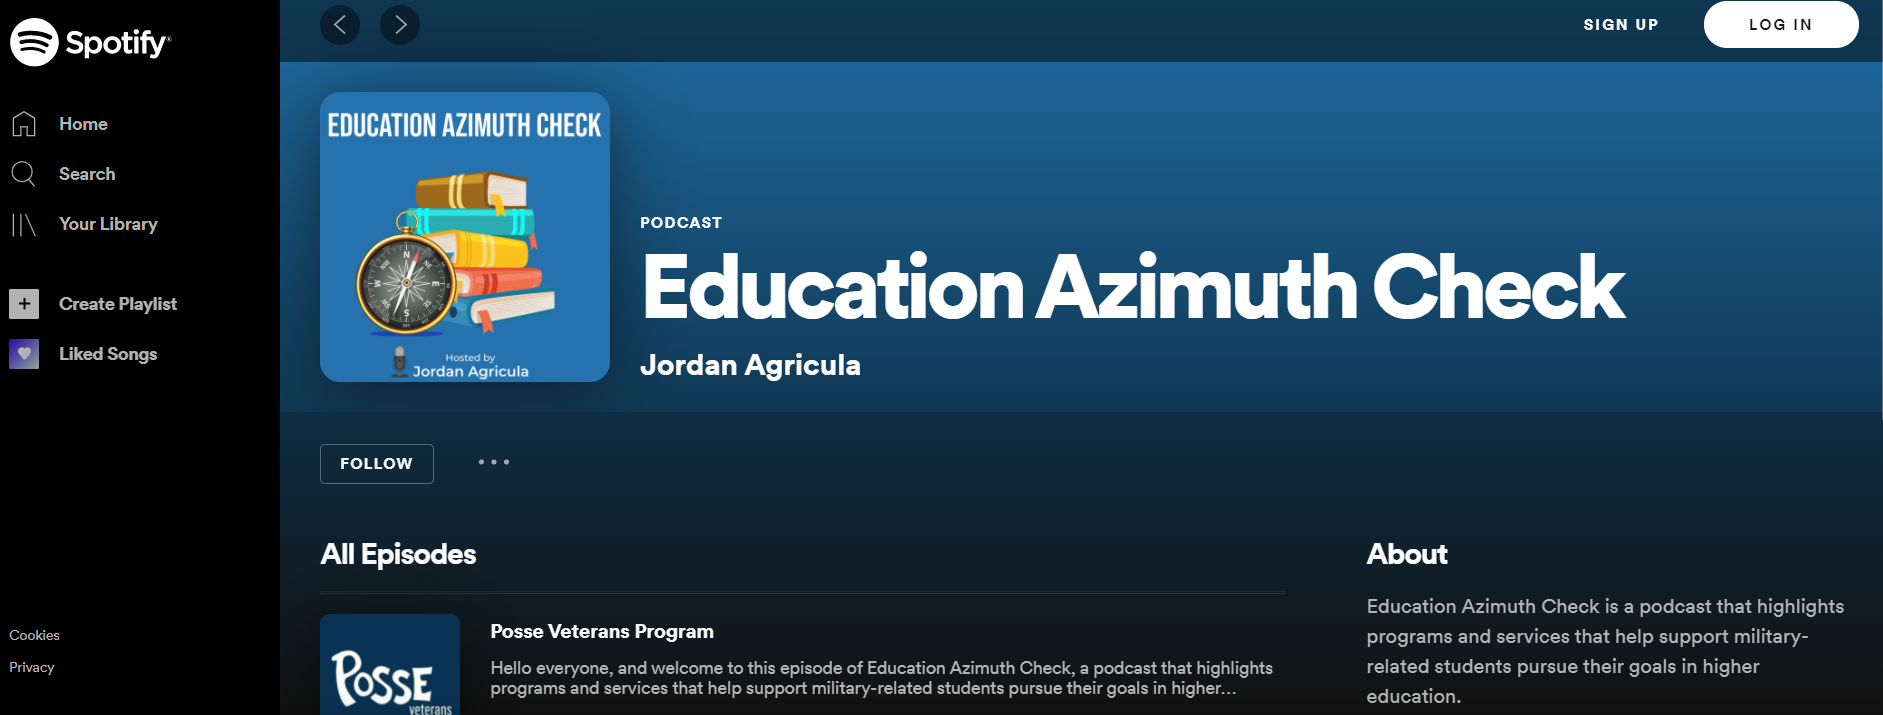 Education Azimuth Check on spotify by Jordan Agricula '21